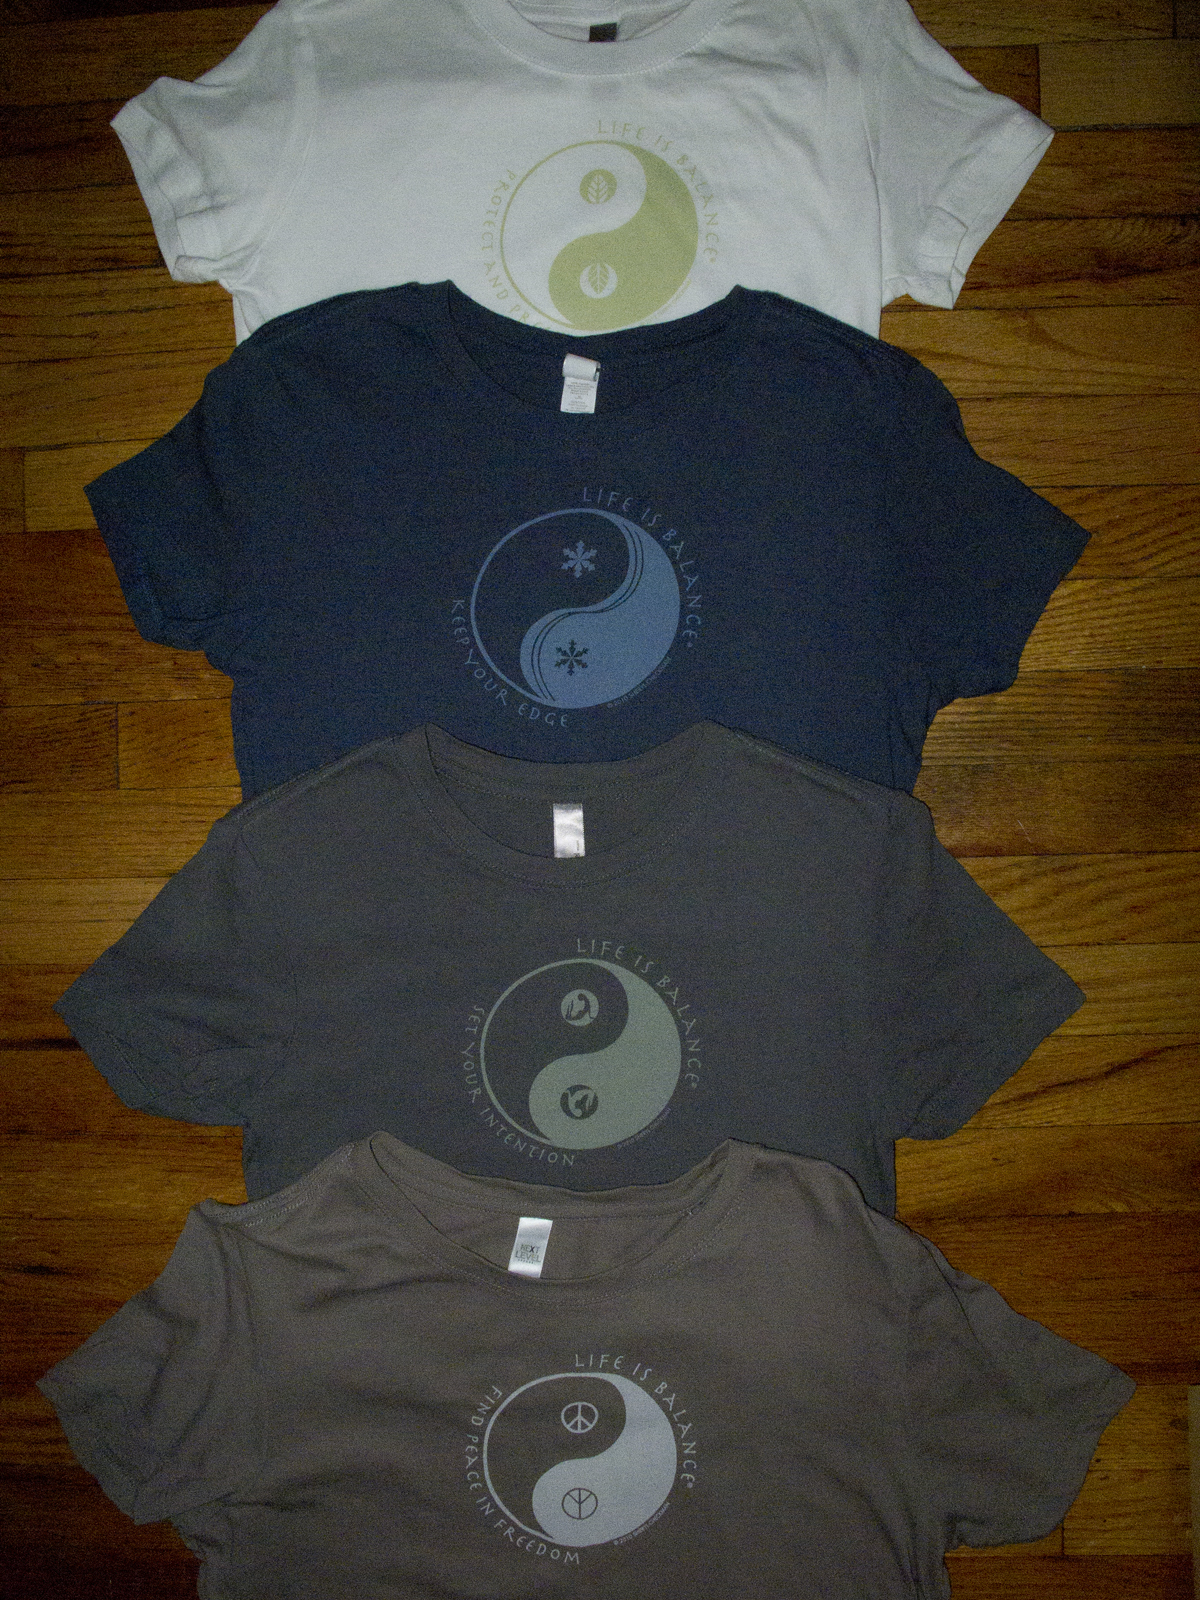 Life is Balance T-Shirts – Hot Off the Press!